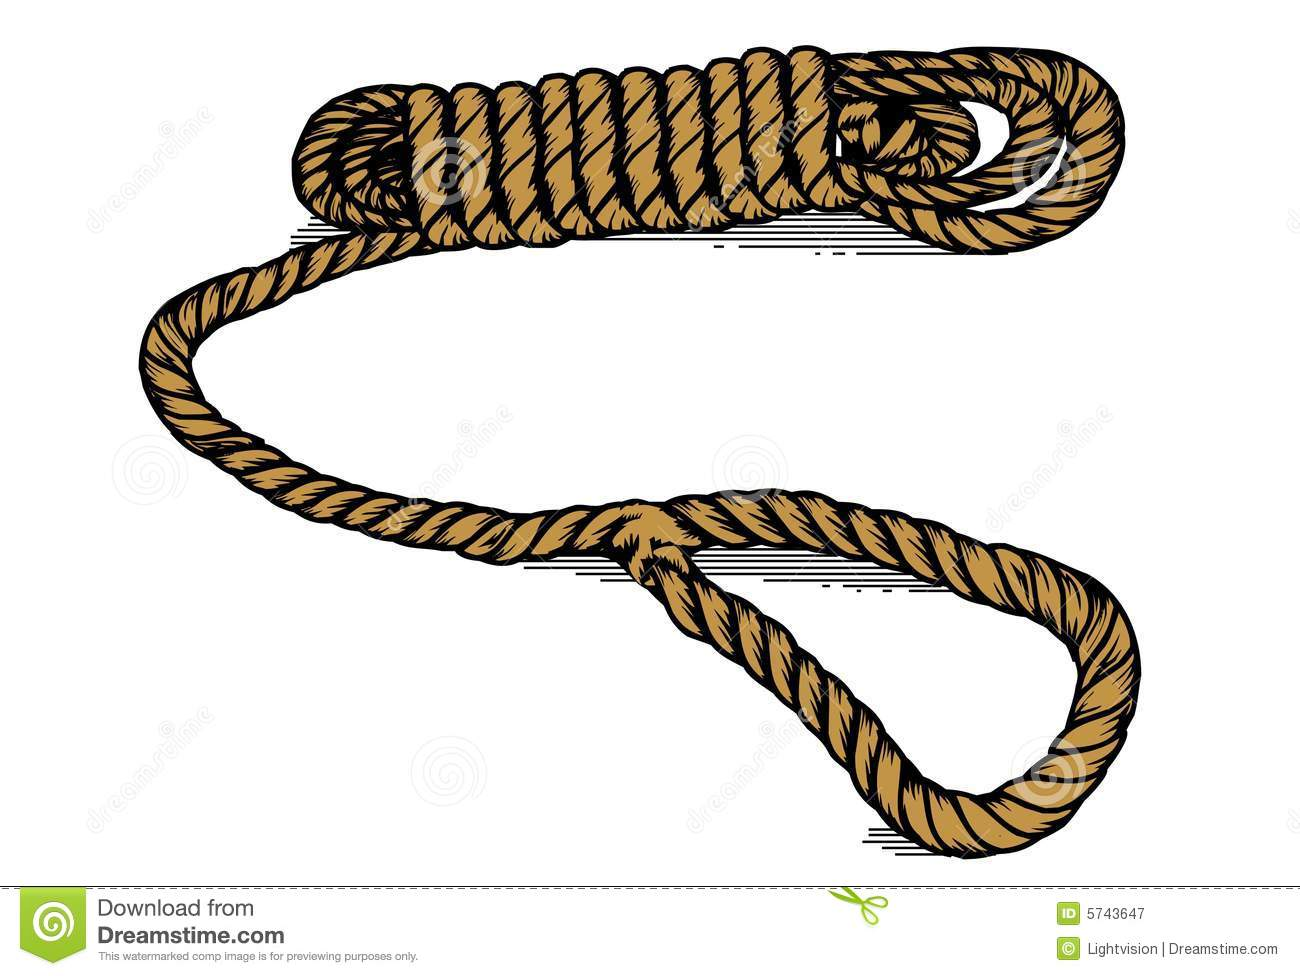 Rope images clipart jpg royalty free library 8+ Rope Clipart | ClipartLook jpg royalty free library